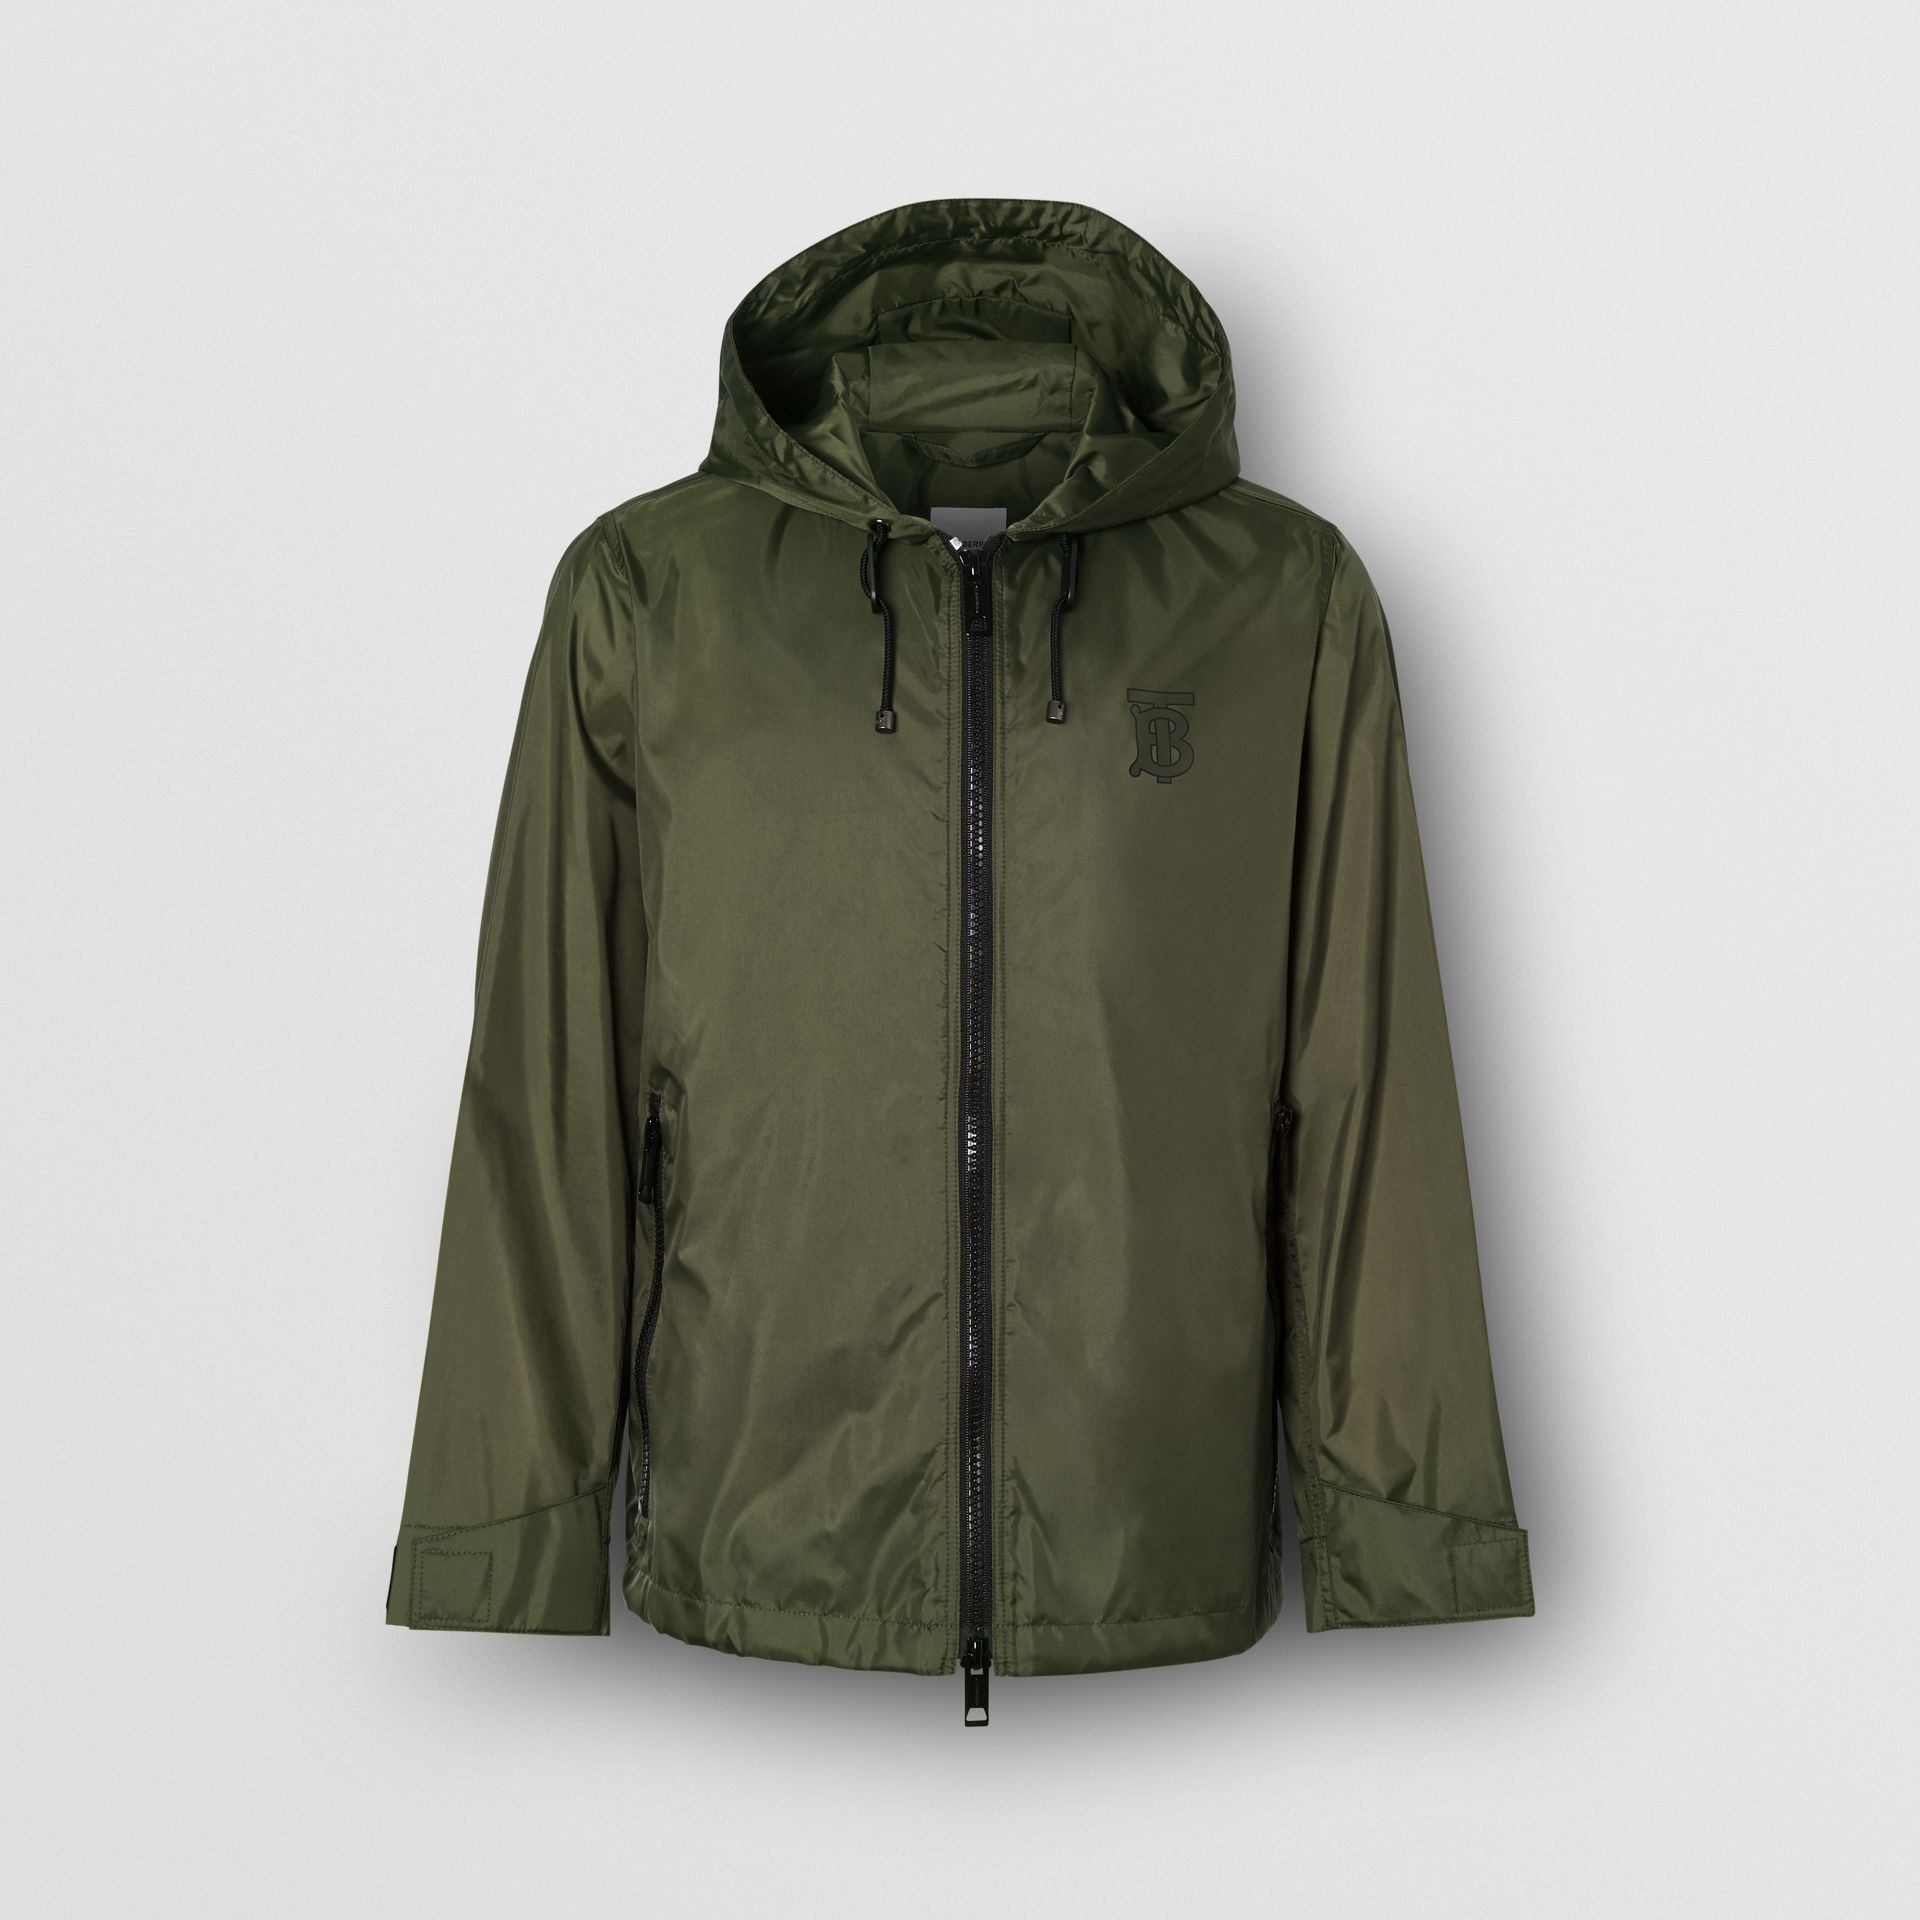 Monogram Motif Lightweight Hooded Jacket in Light Olive - Women | Burberry United States - gallery image 3